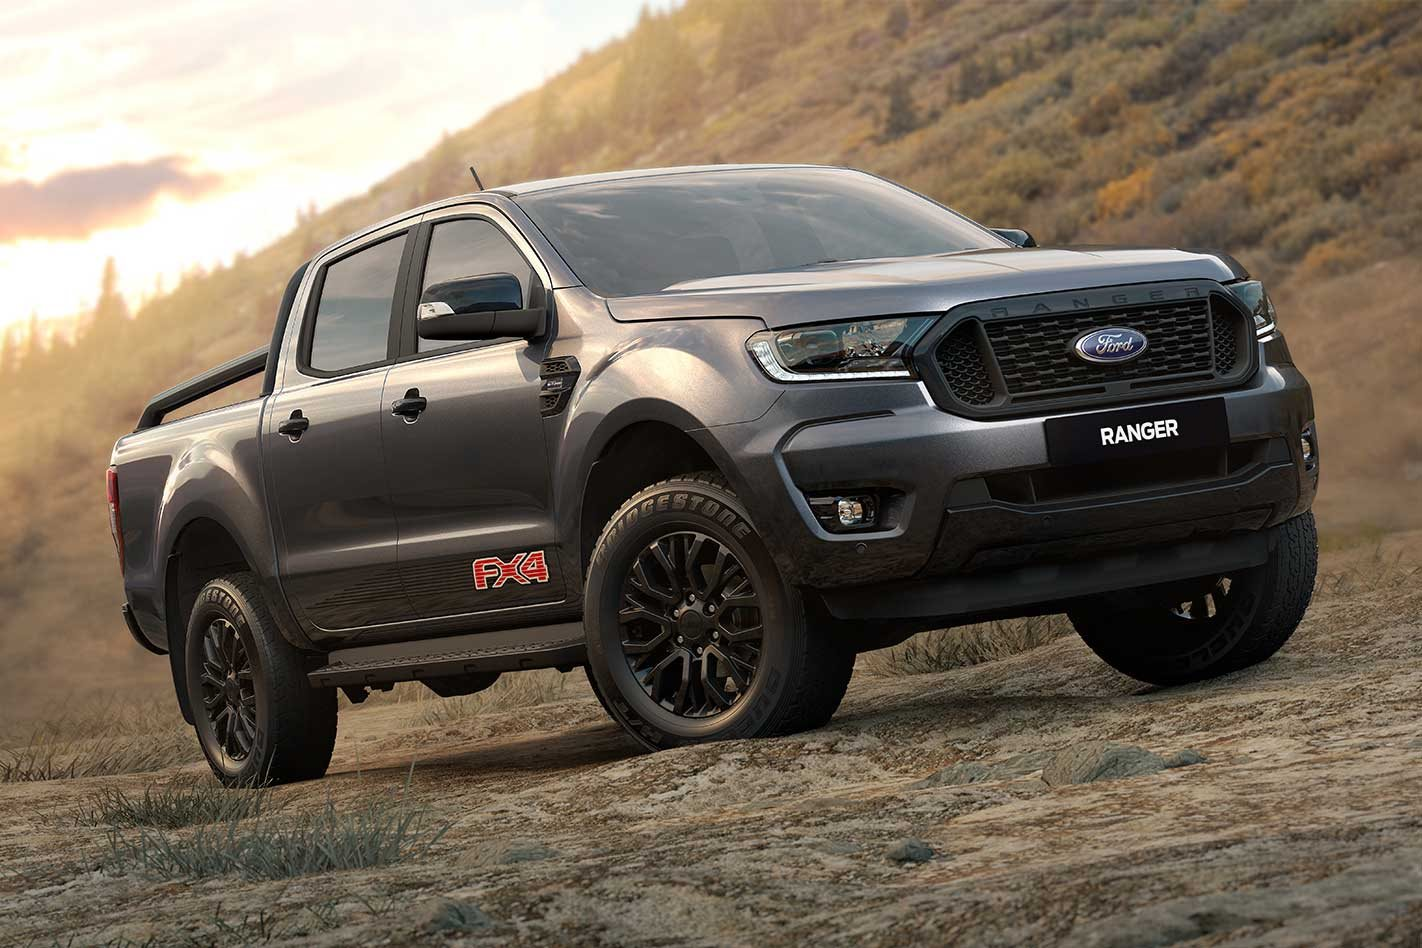 Ford Ranger FX4 returns, offering two powertrain options